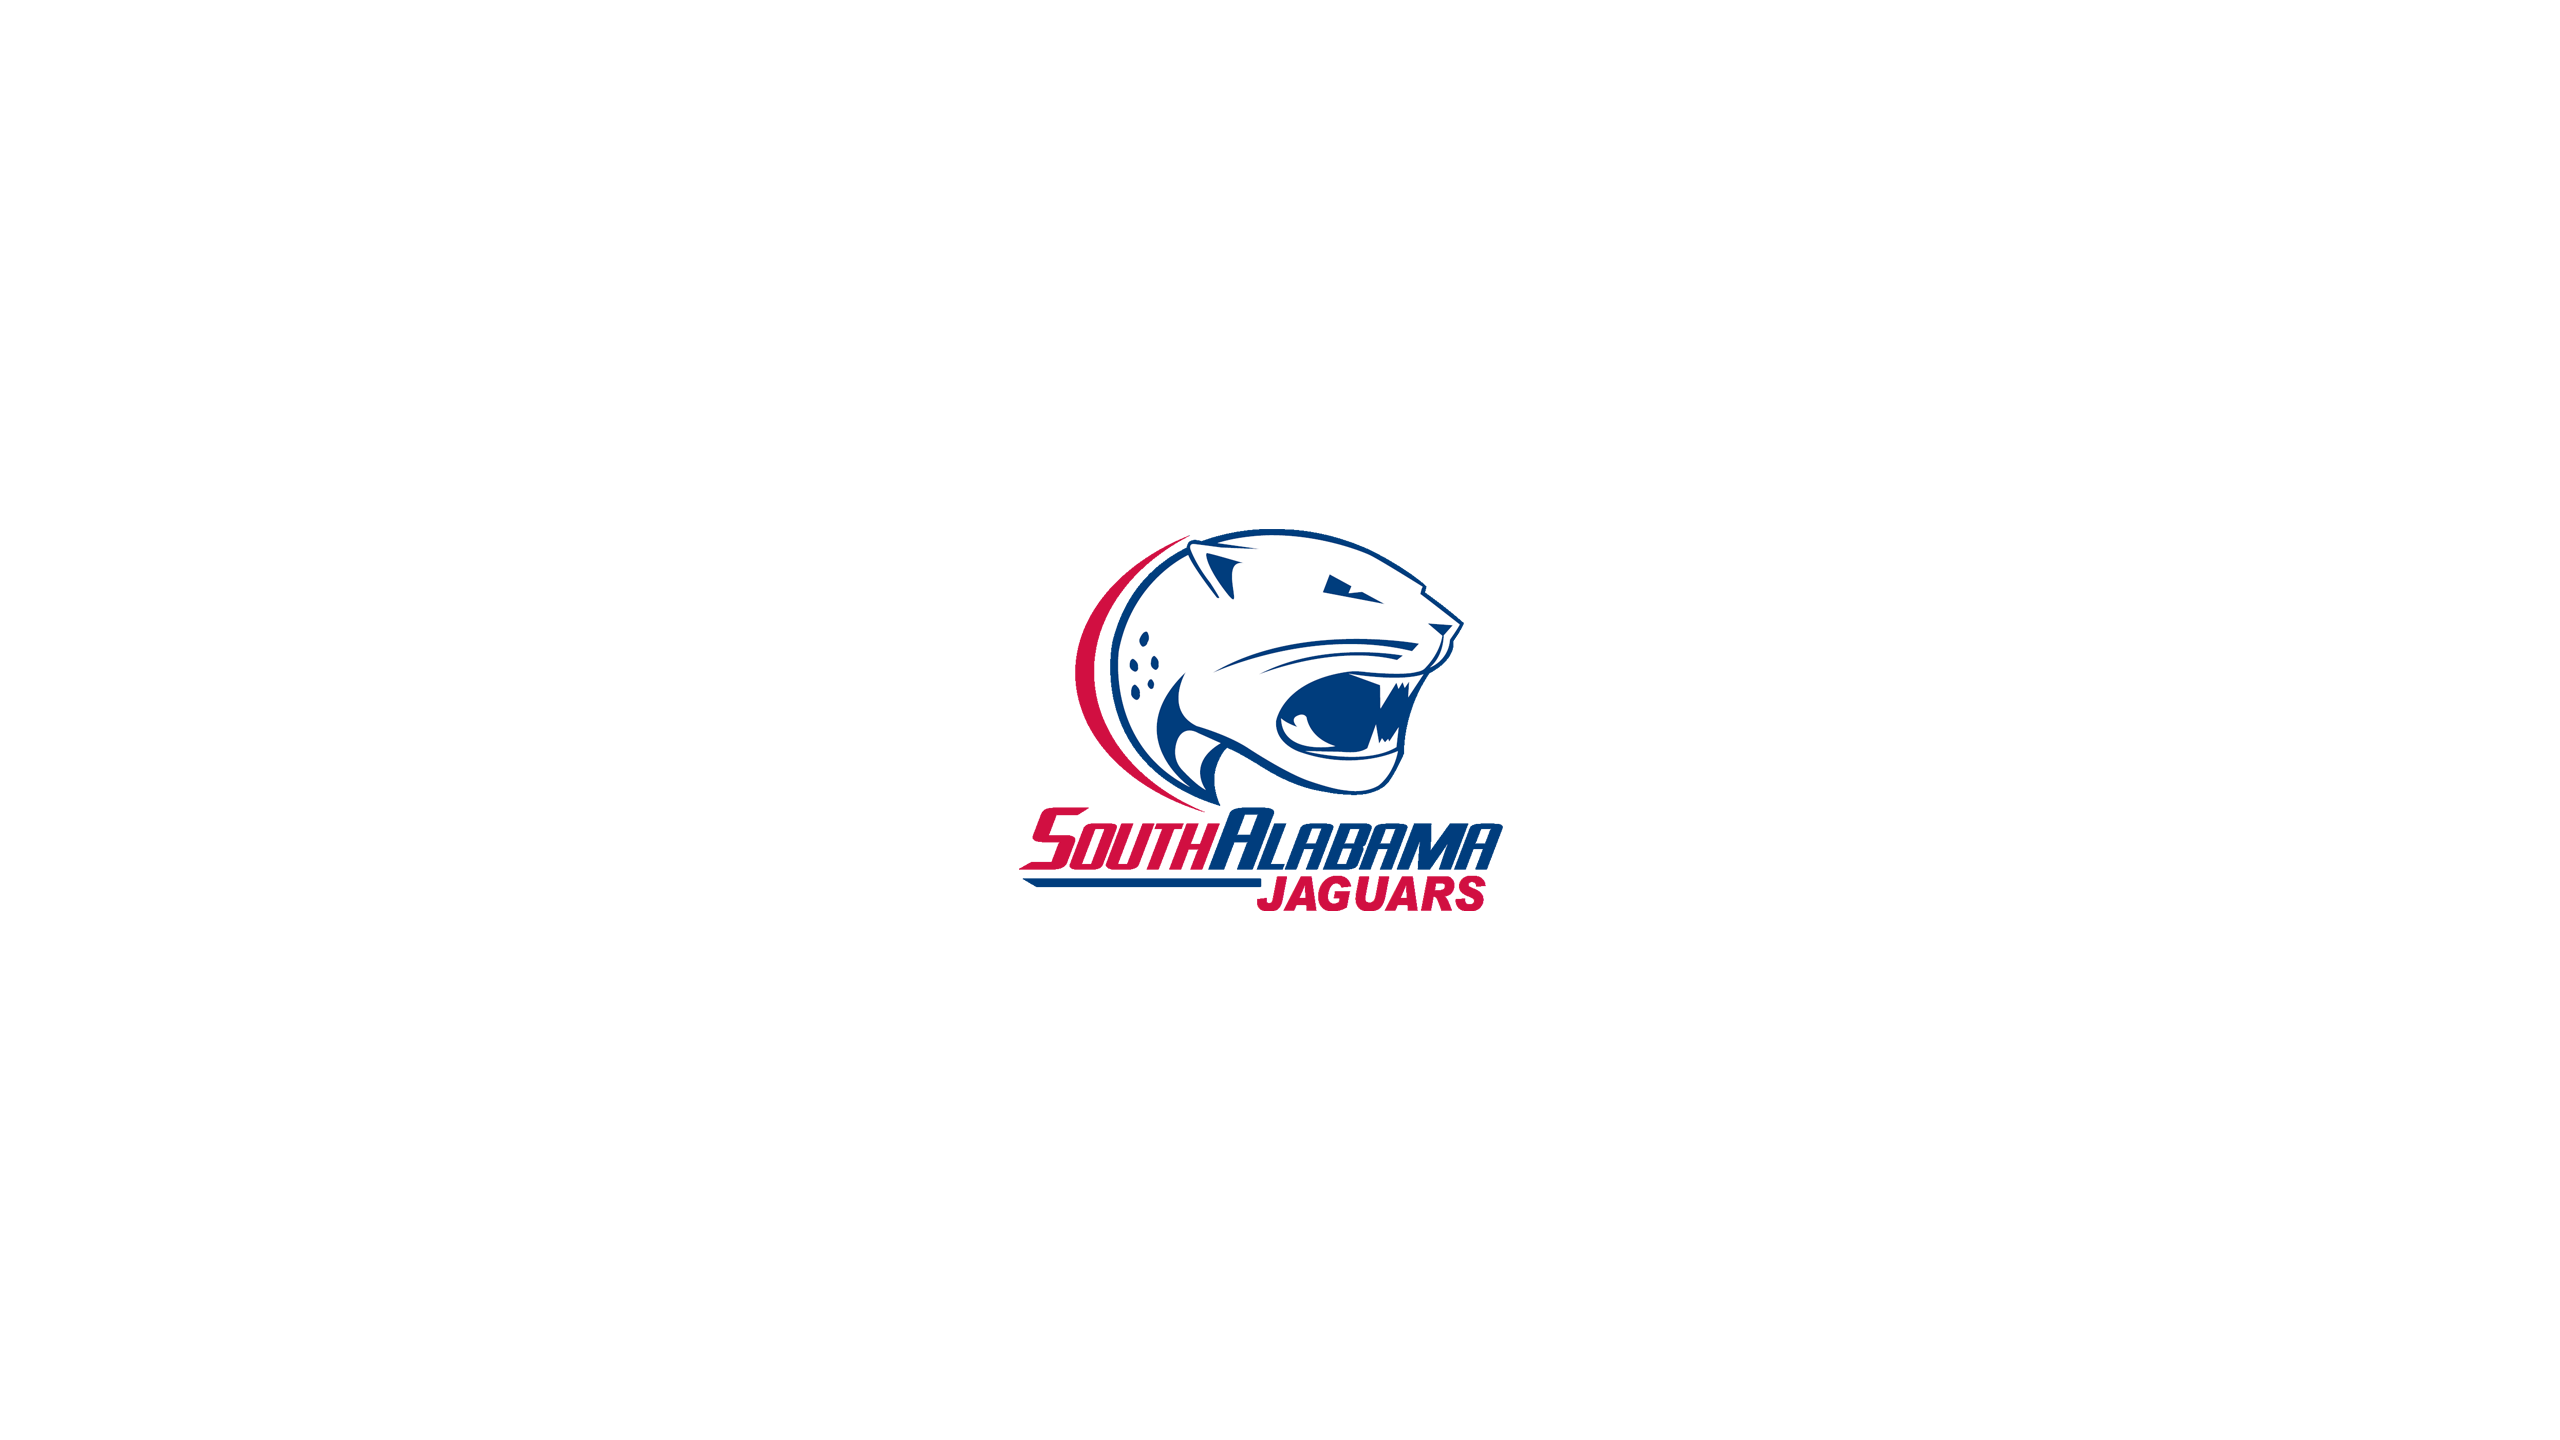 University of South Alabama Jaguars